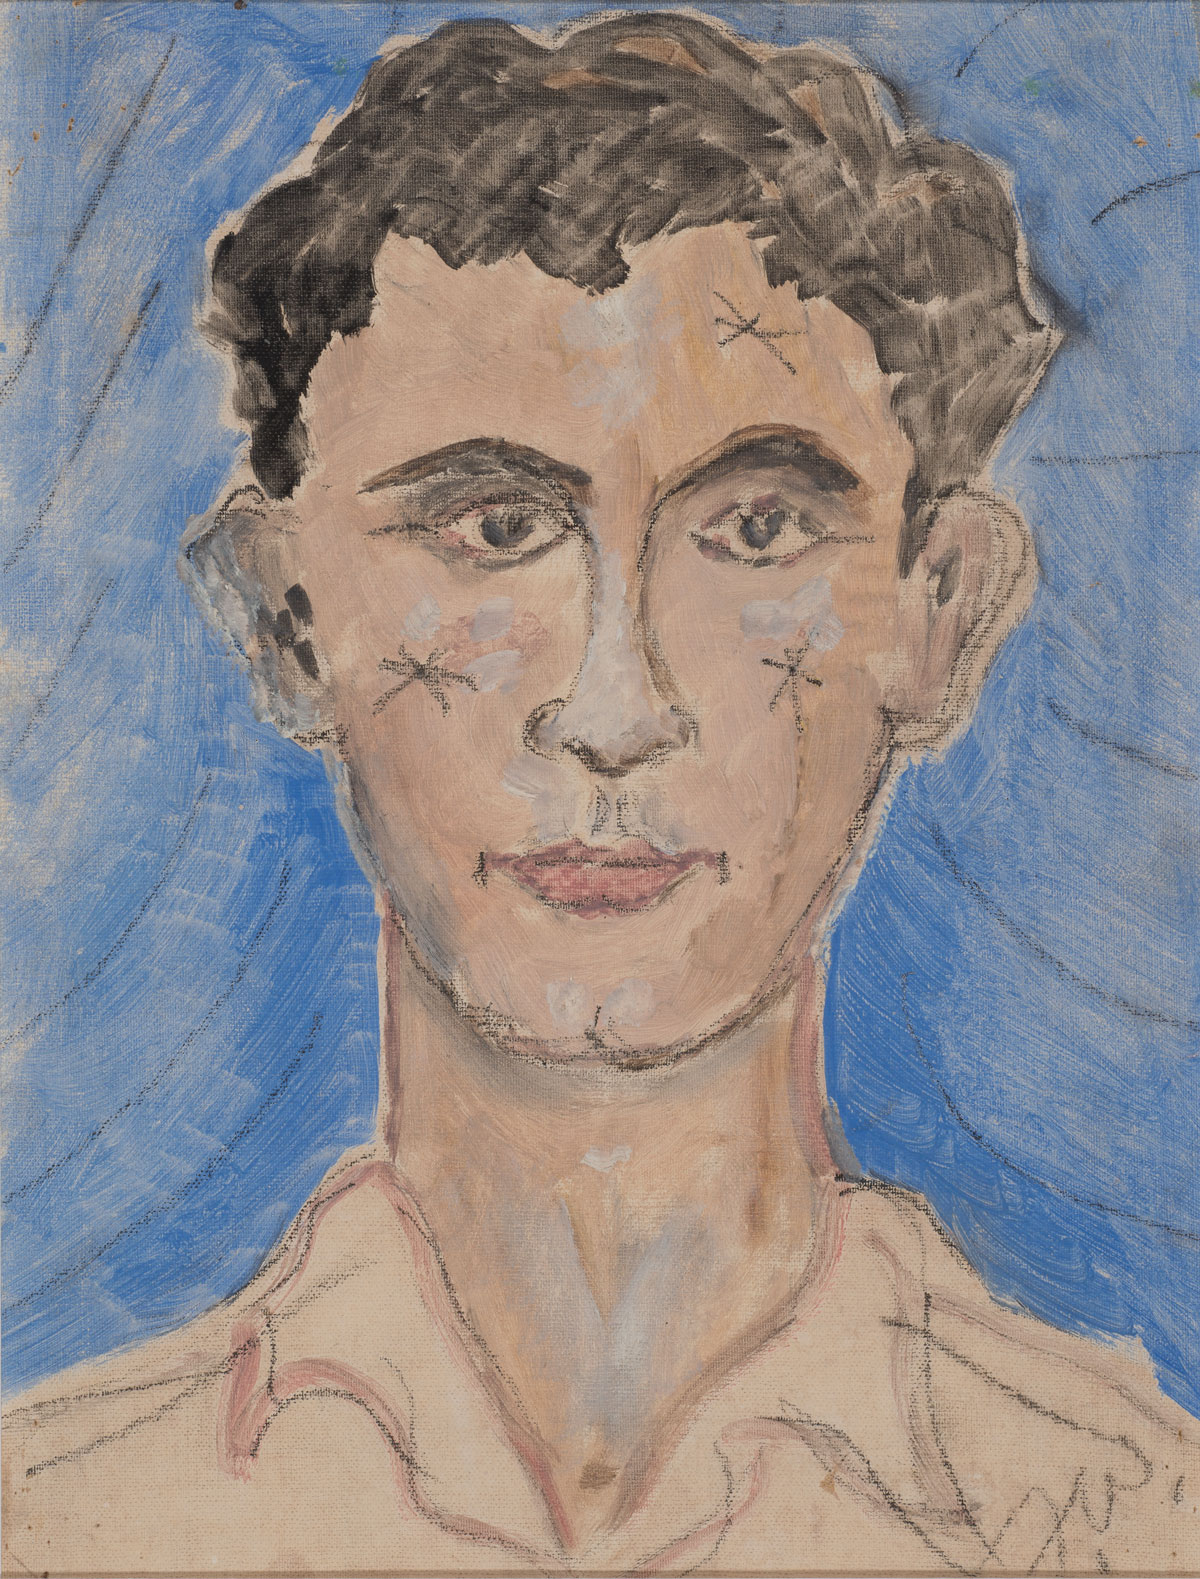 Tennesse Williams (American, 1911-1983) Untitled [portrait of Pancho Rodriguez], not dated Oil and charcoal on canvas board 23 x 19 3/4 inches Signed T.W.